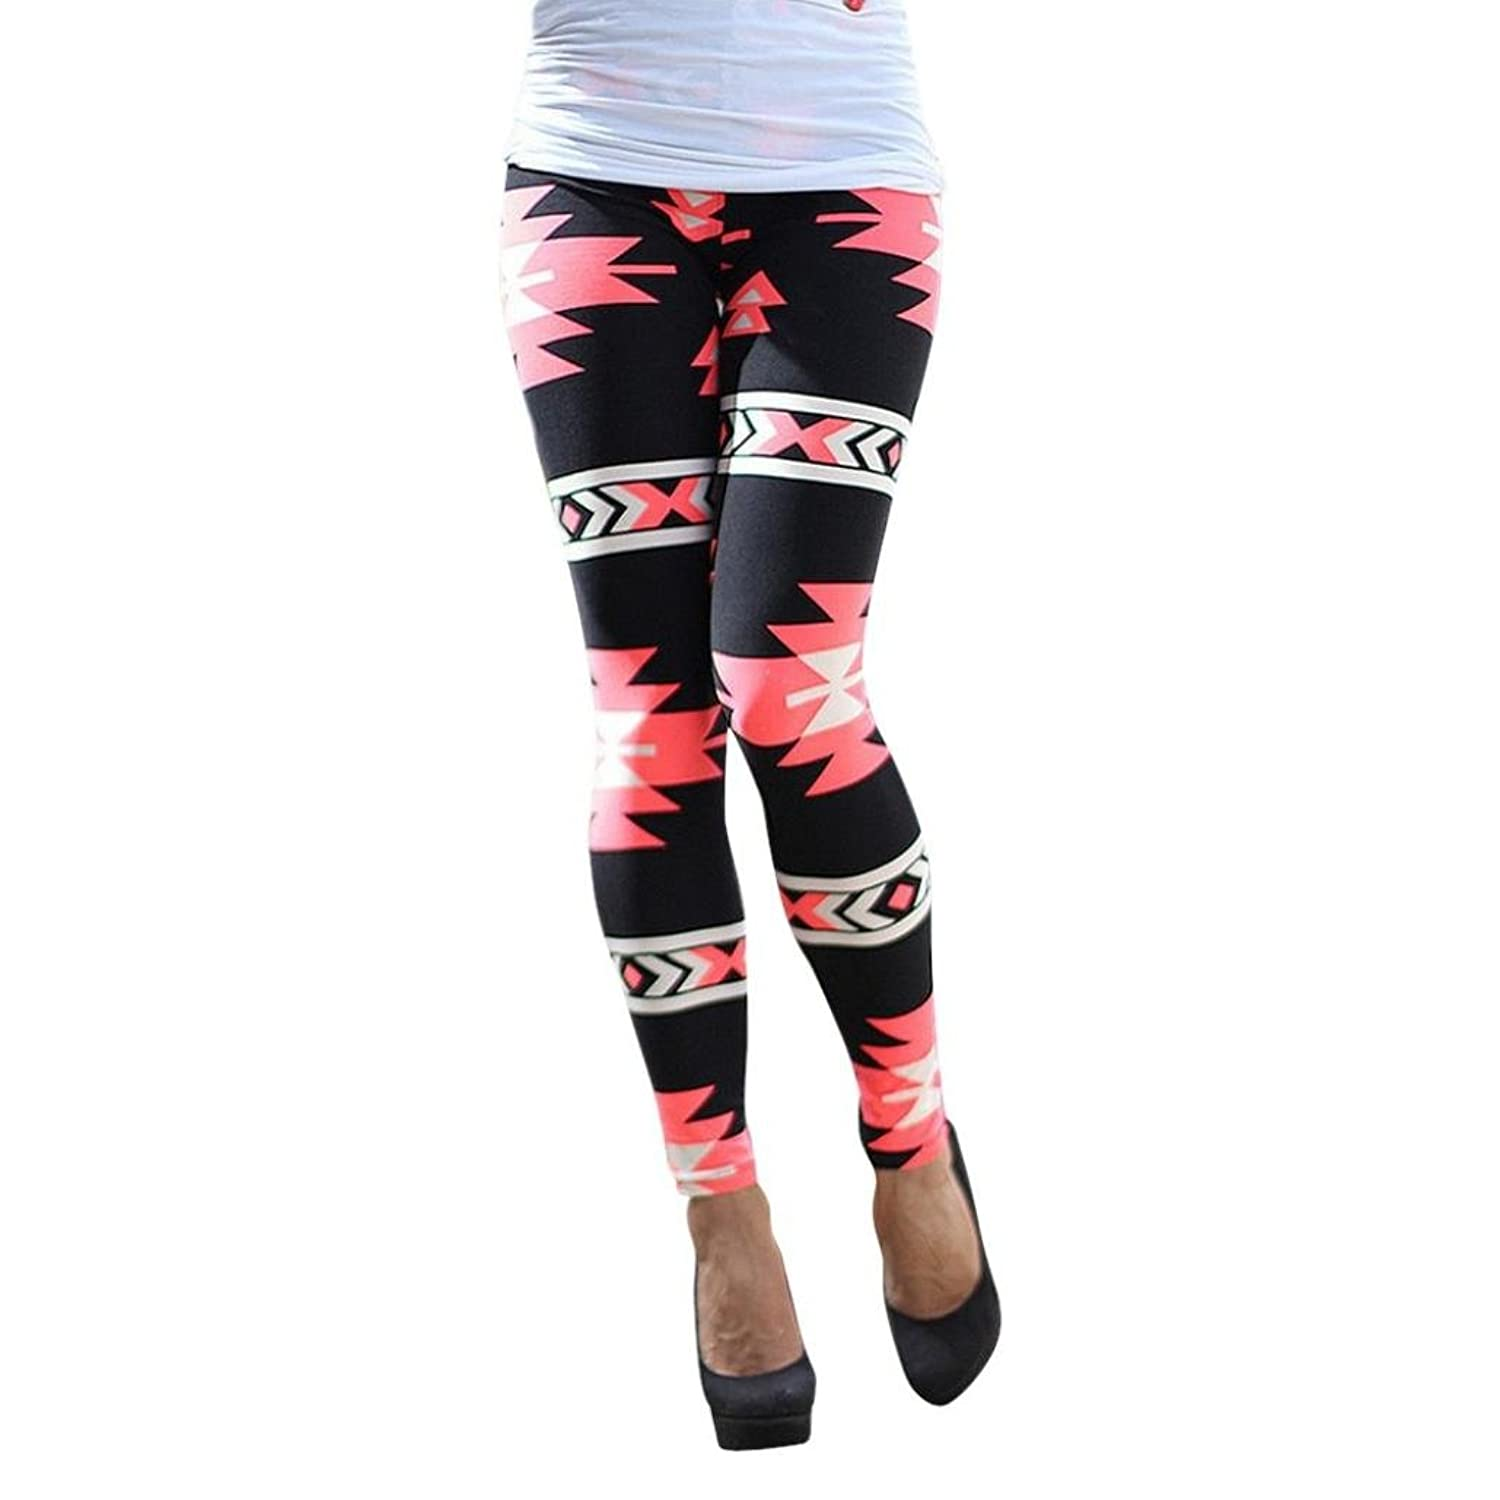 Malloom Women Geometric Print Elastic Leggings Casual Slim Fit Leggings Pants